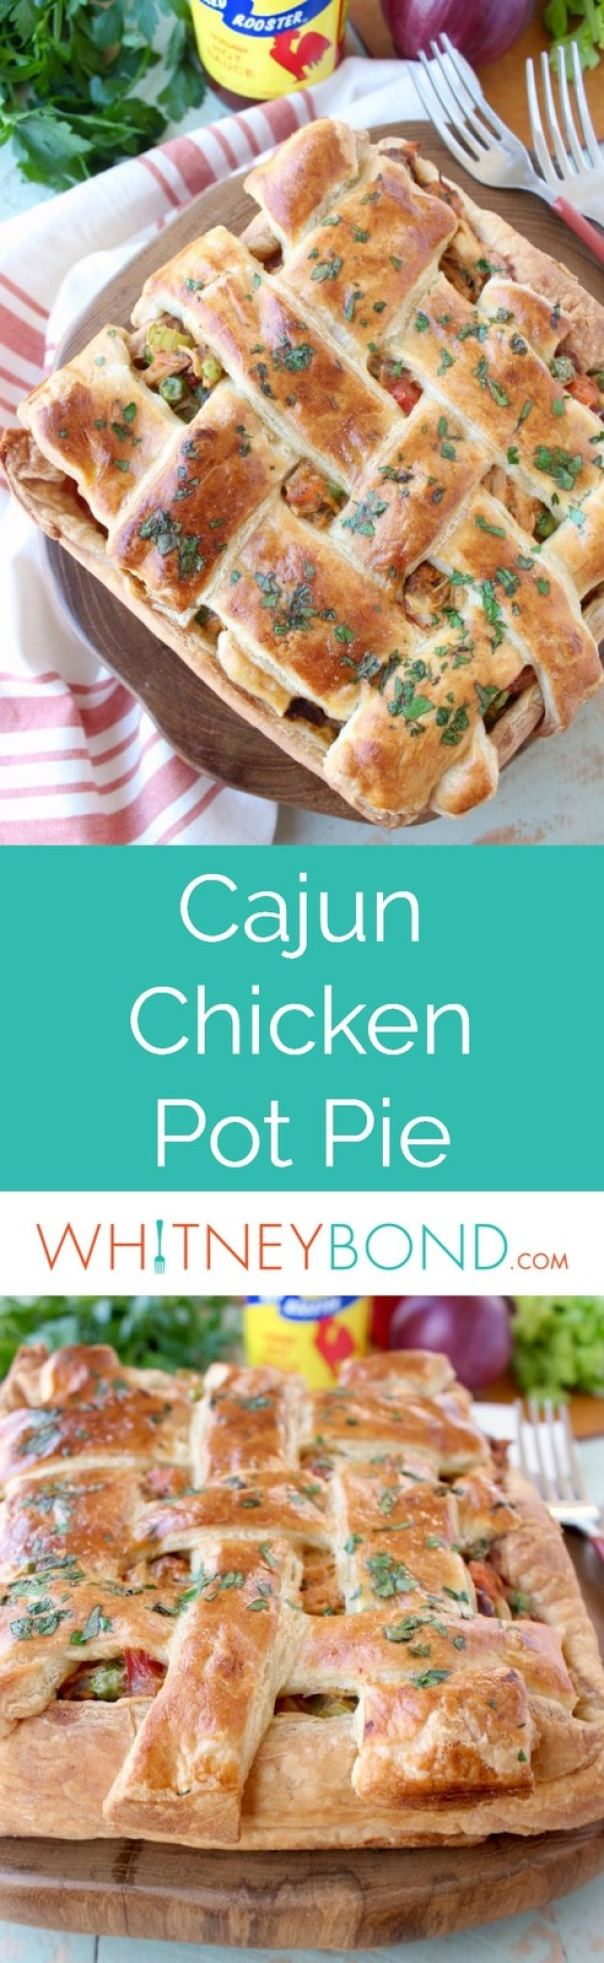 This seriously scrumptious Cajun Chicken Pot Pie Recipe is a slightly spicy and totally delicious twist on traditional chicken pot pie!